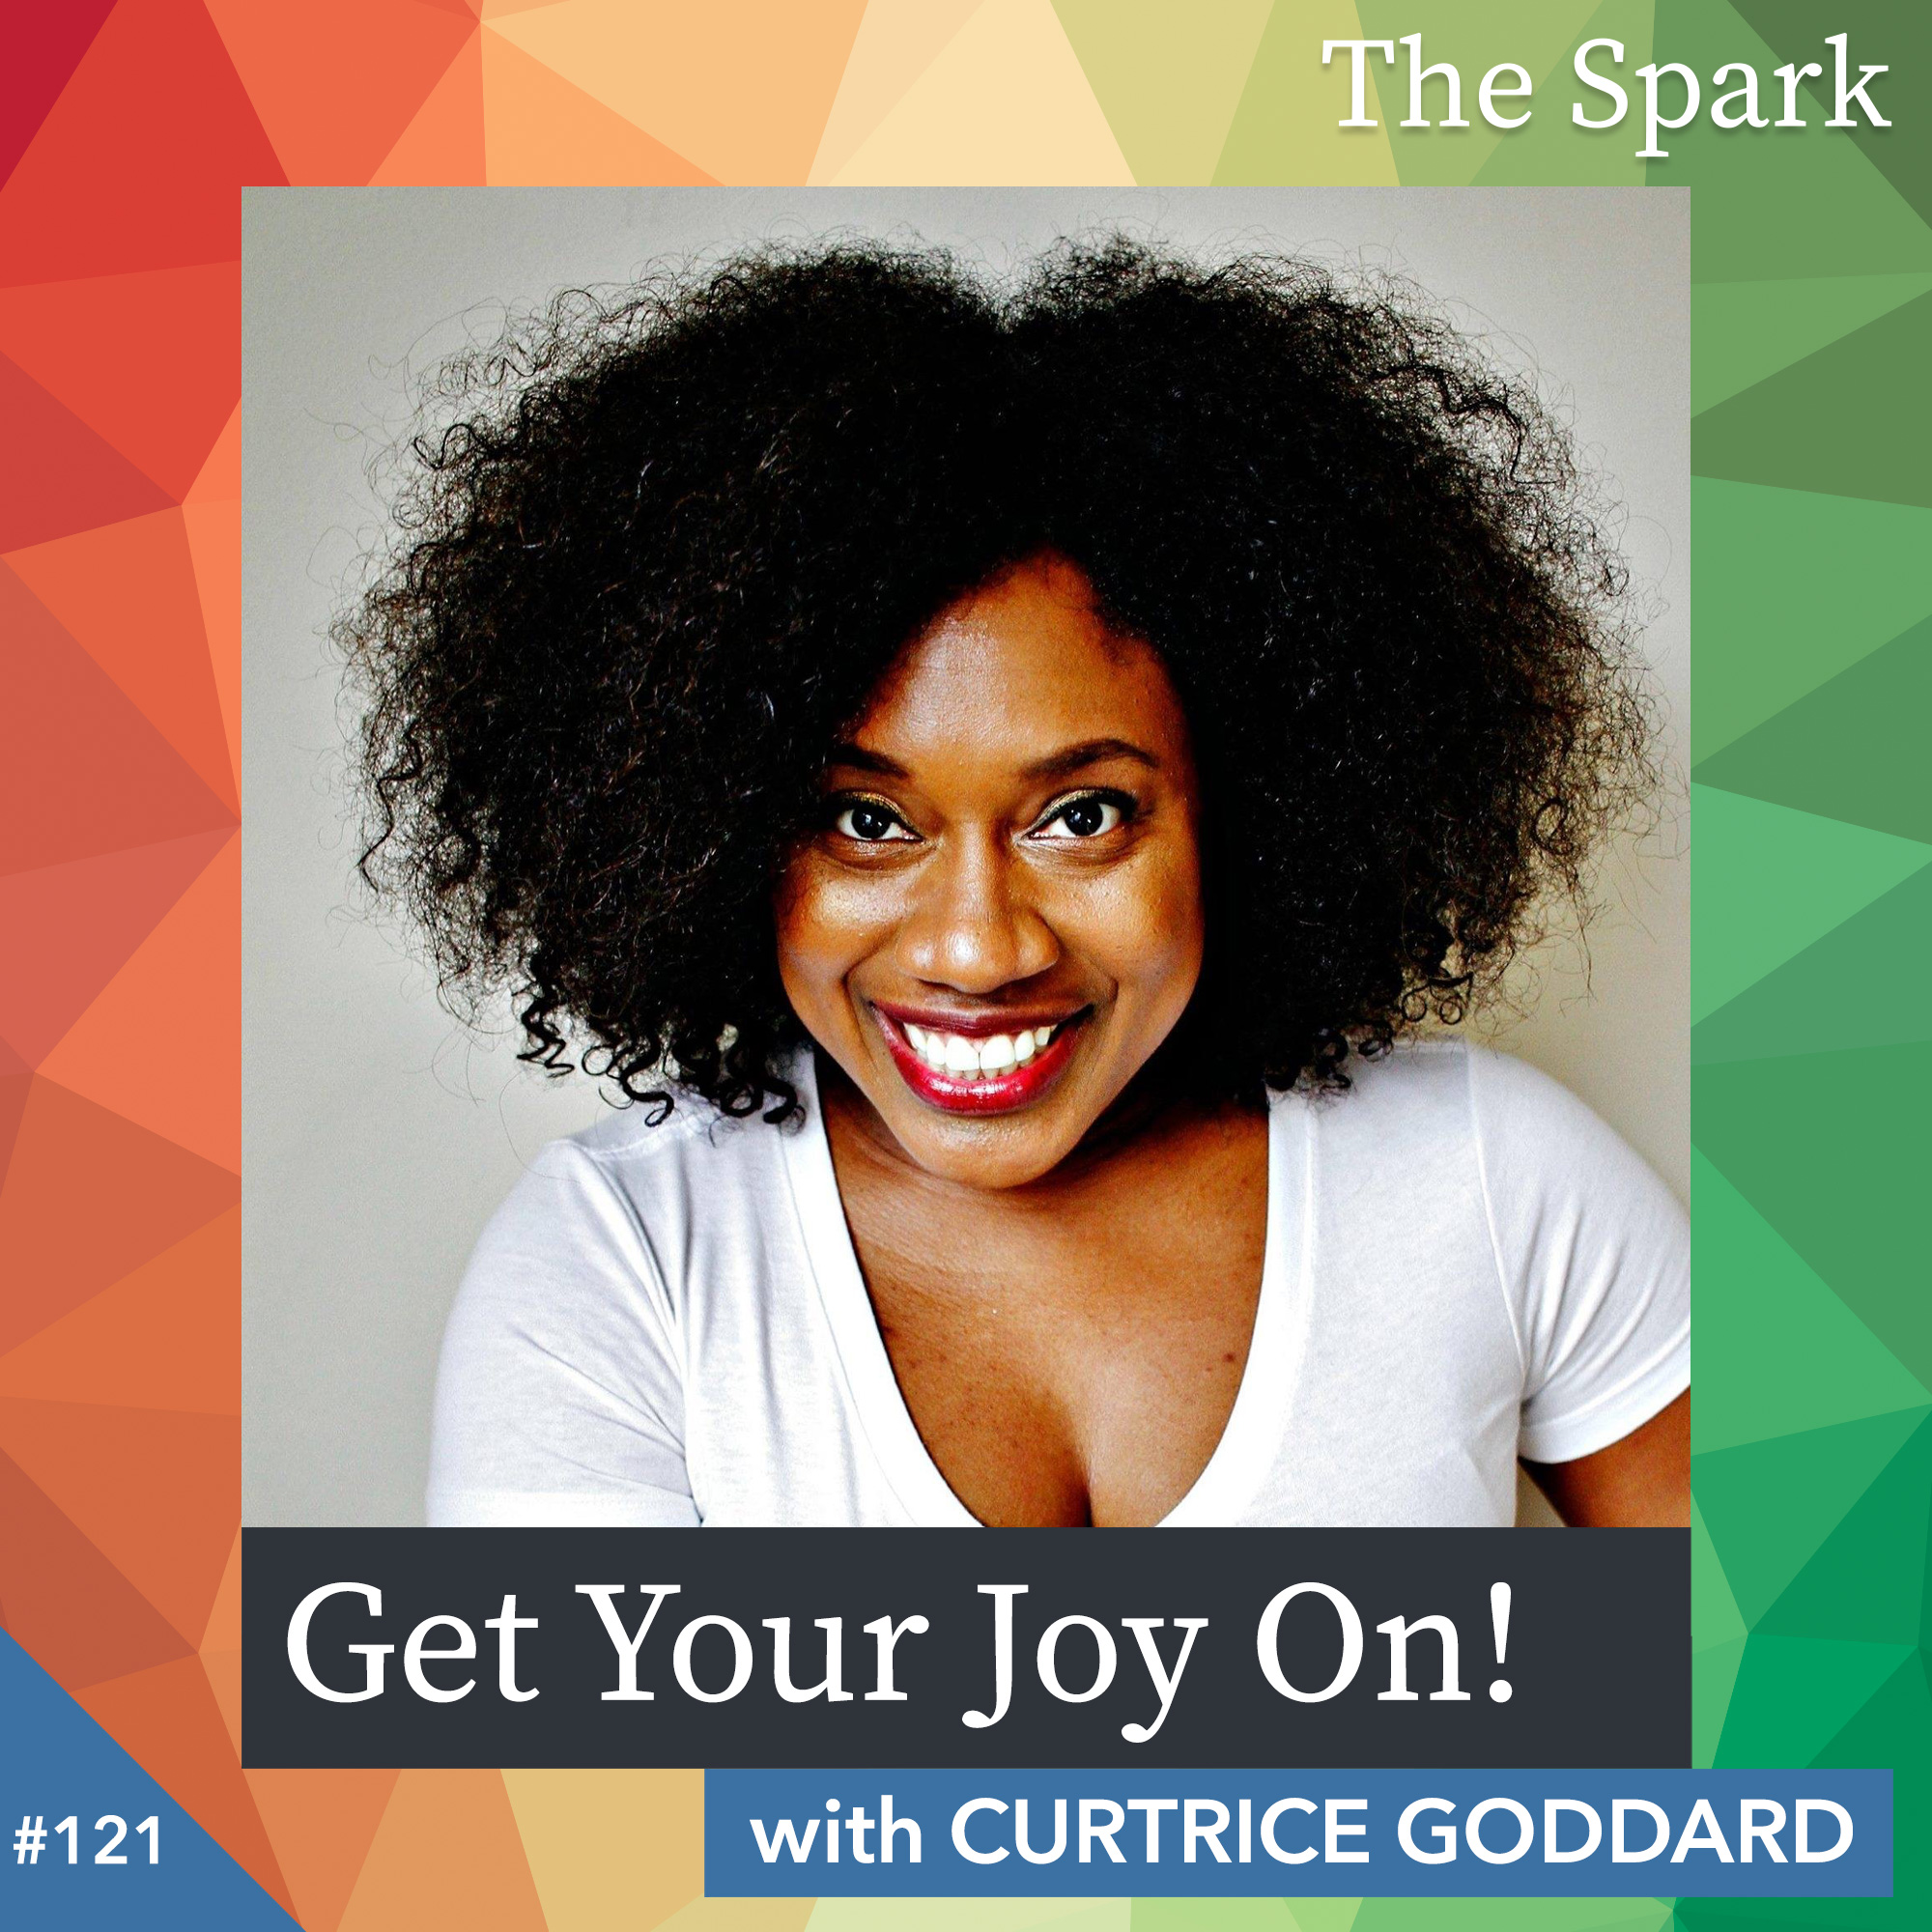 Get Your Joy On! with Curtrice Goddard